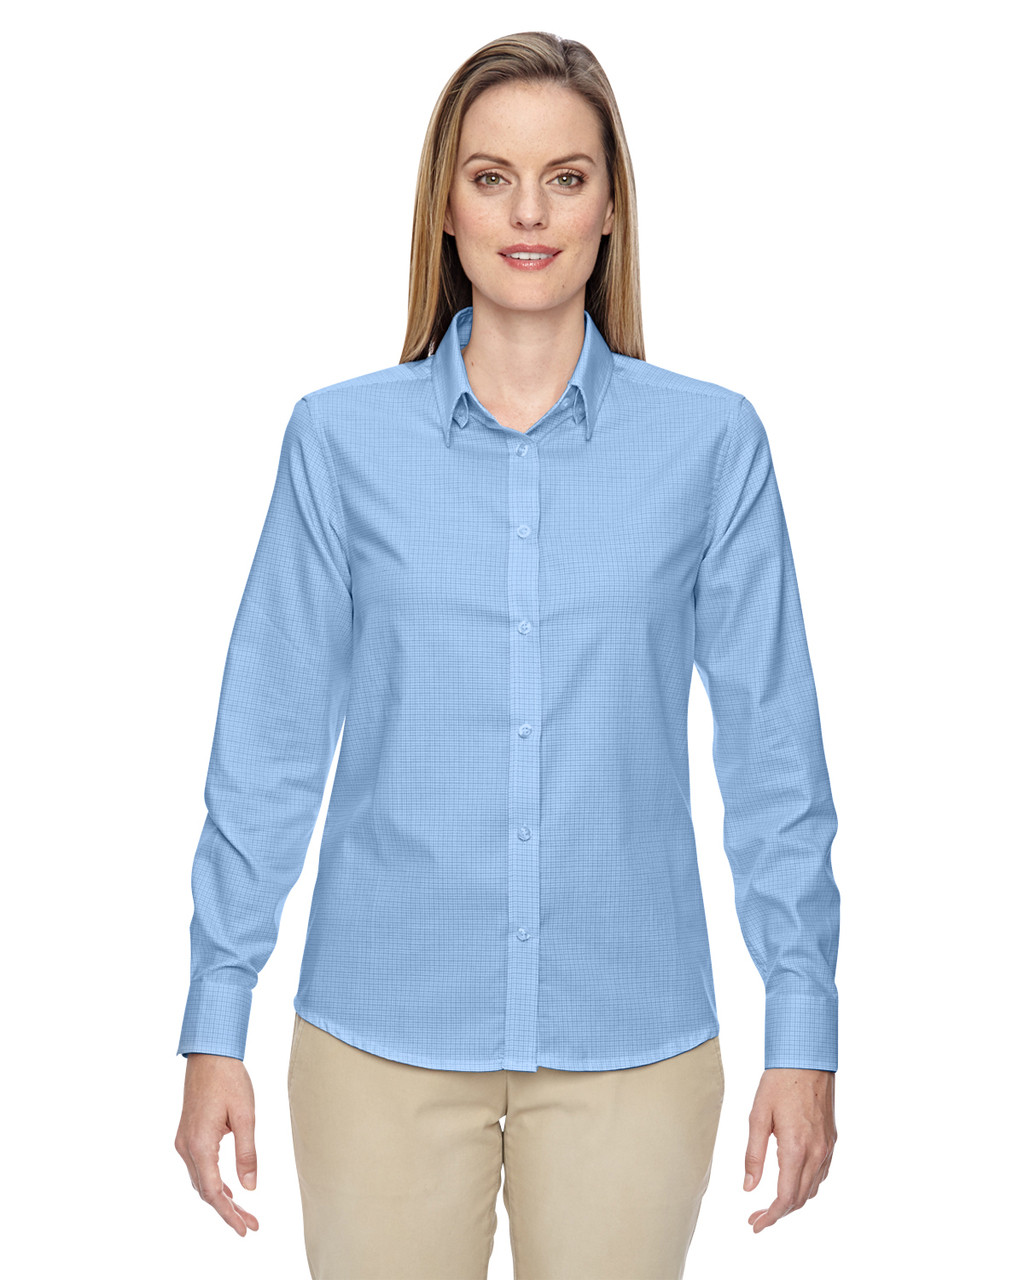 Light Blue 77043 North End Paramount Wrinkle-Resistant Cotton Blend Twill Checkered Shirt | Blankclothing.ca